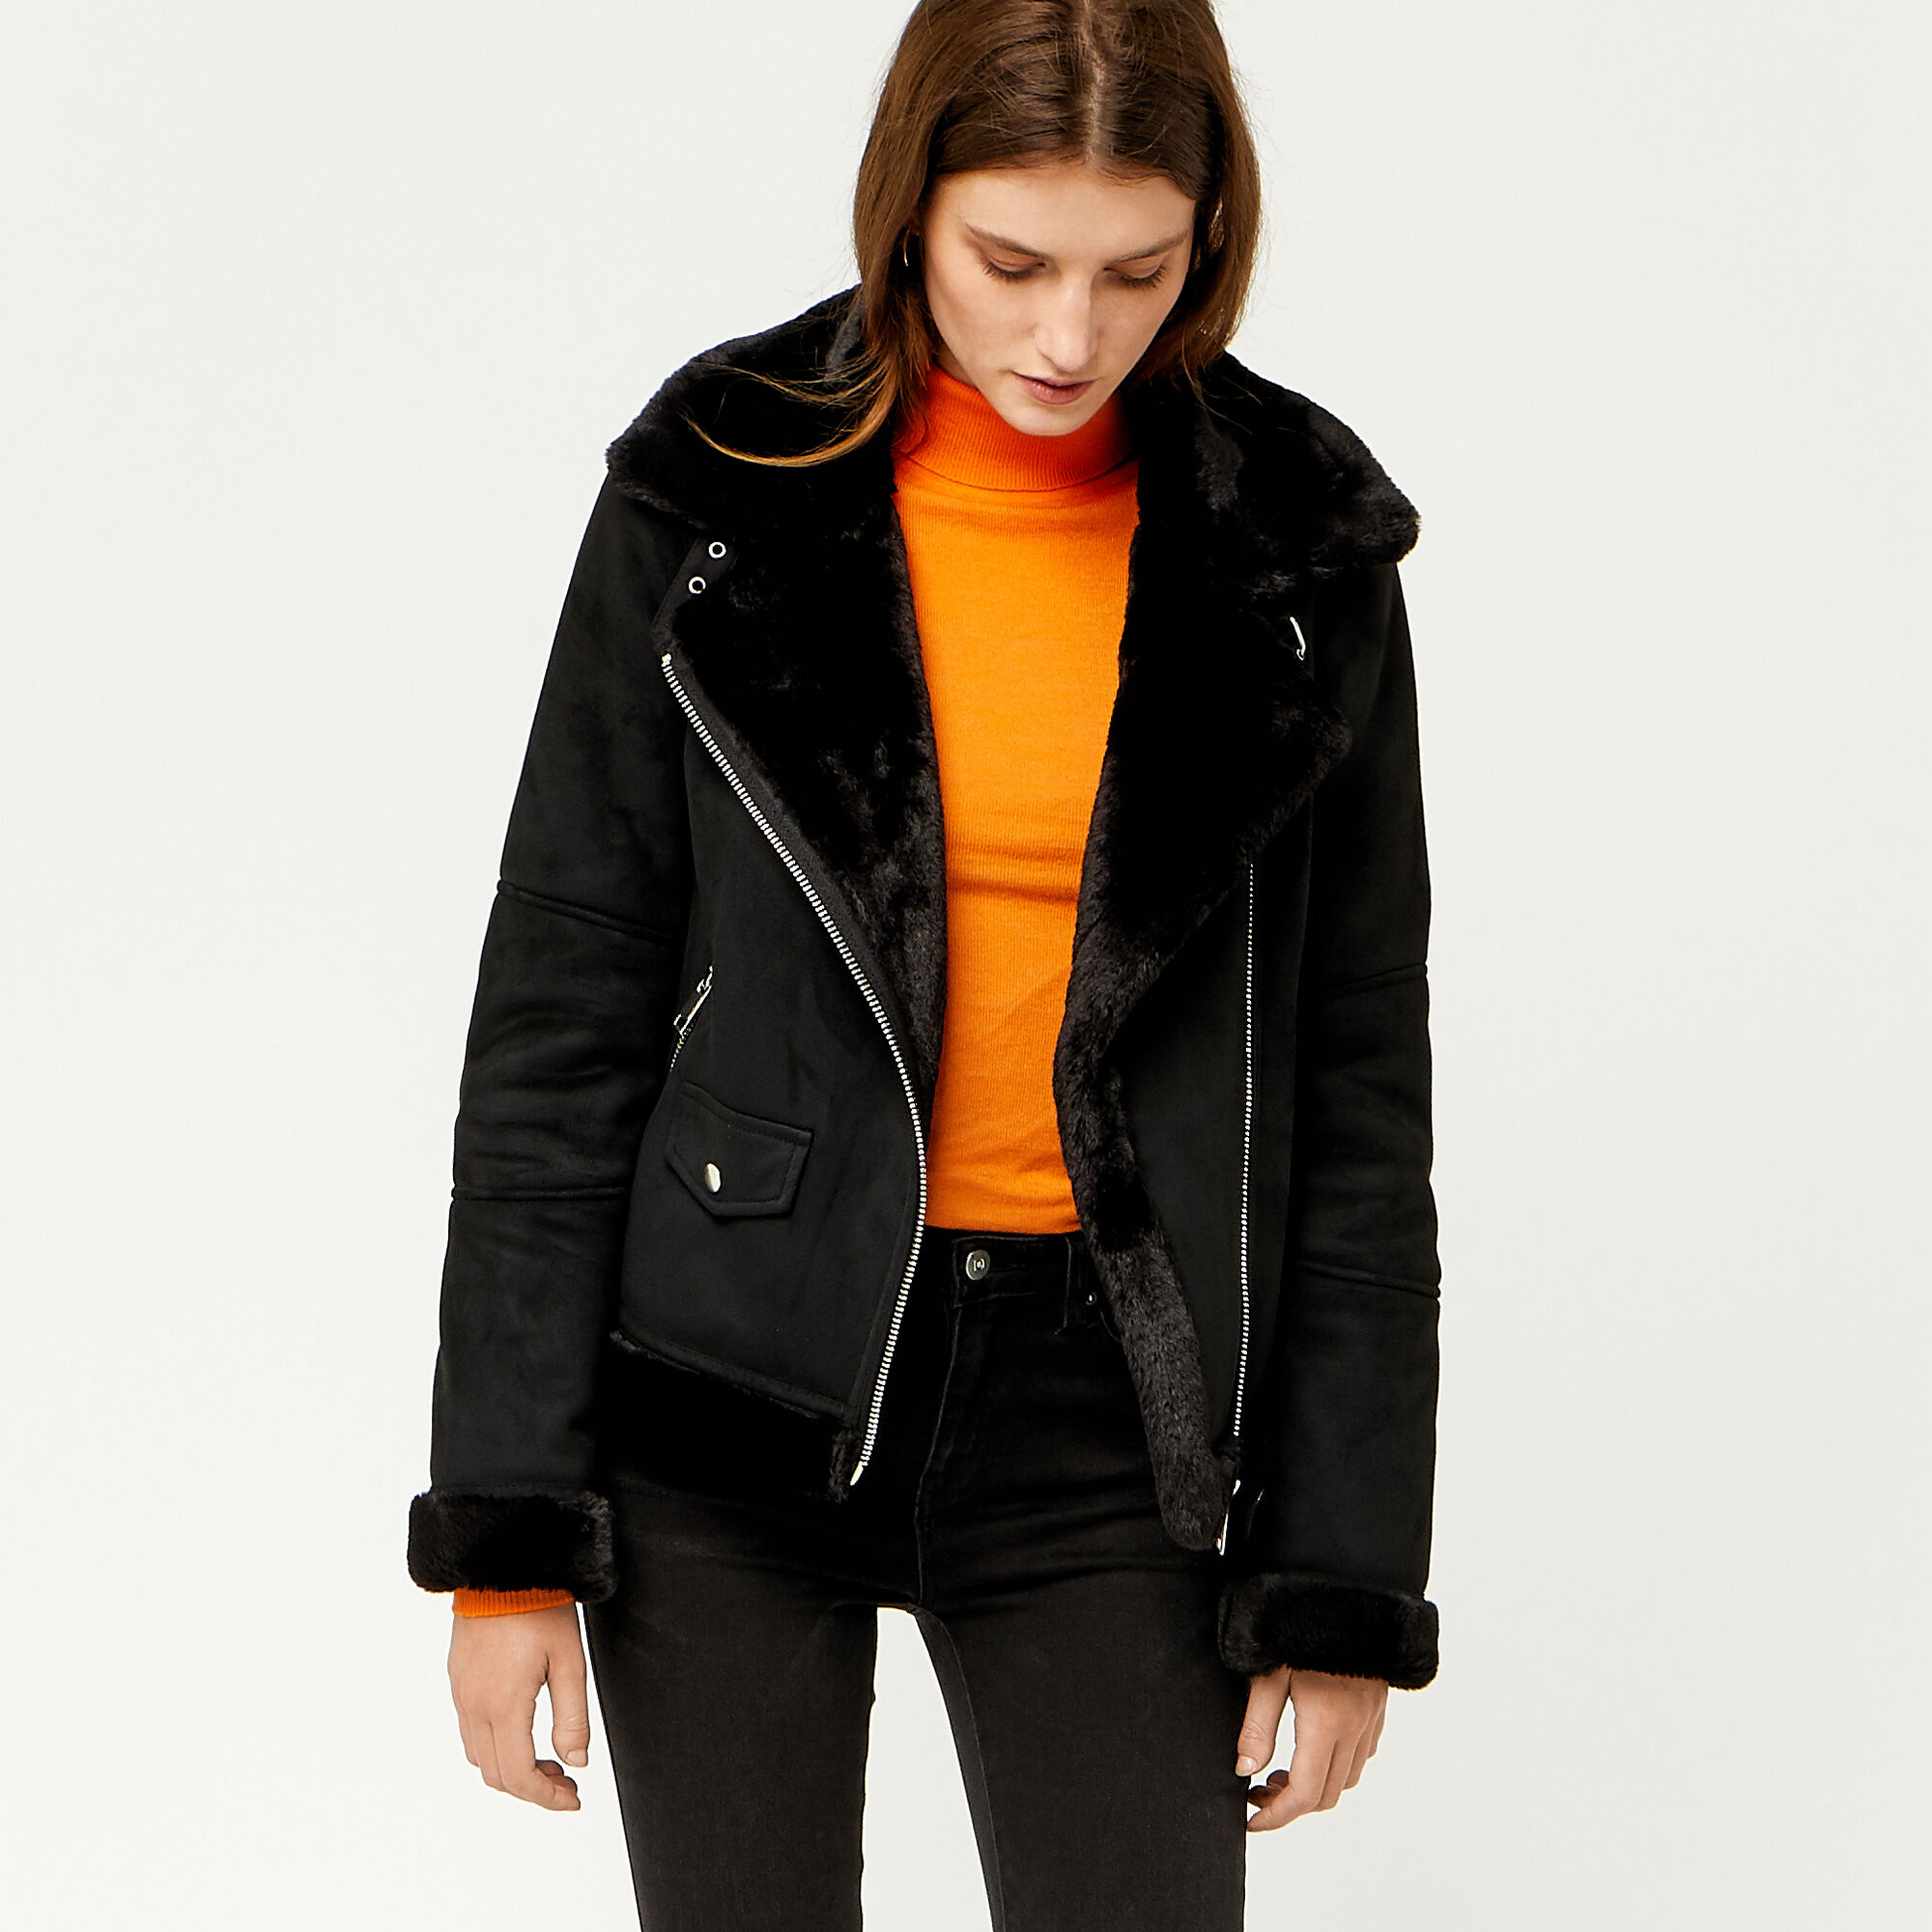 Warehouse, SUEDETTE BONDED BIKER JACKET Black 1